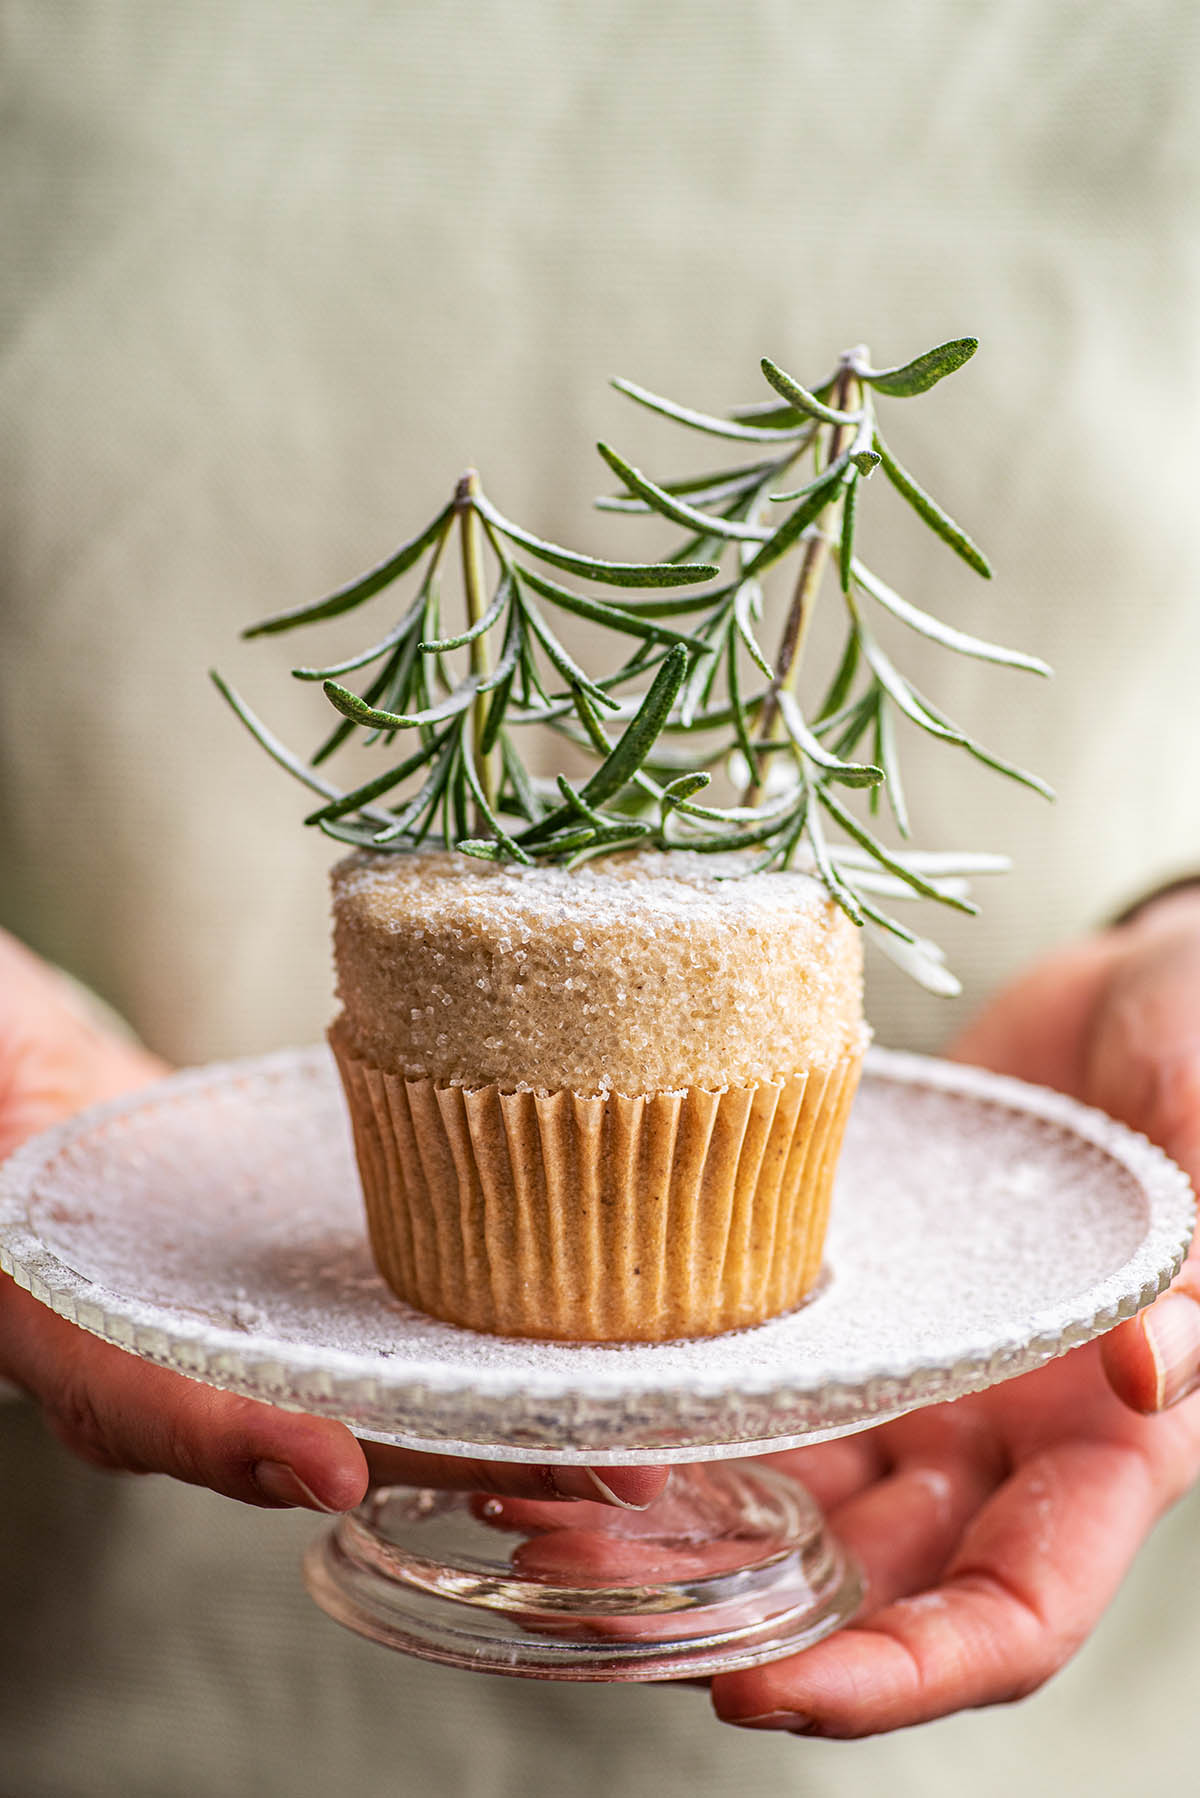 A rosemary tree topped cupcake held in front of a woman.